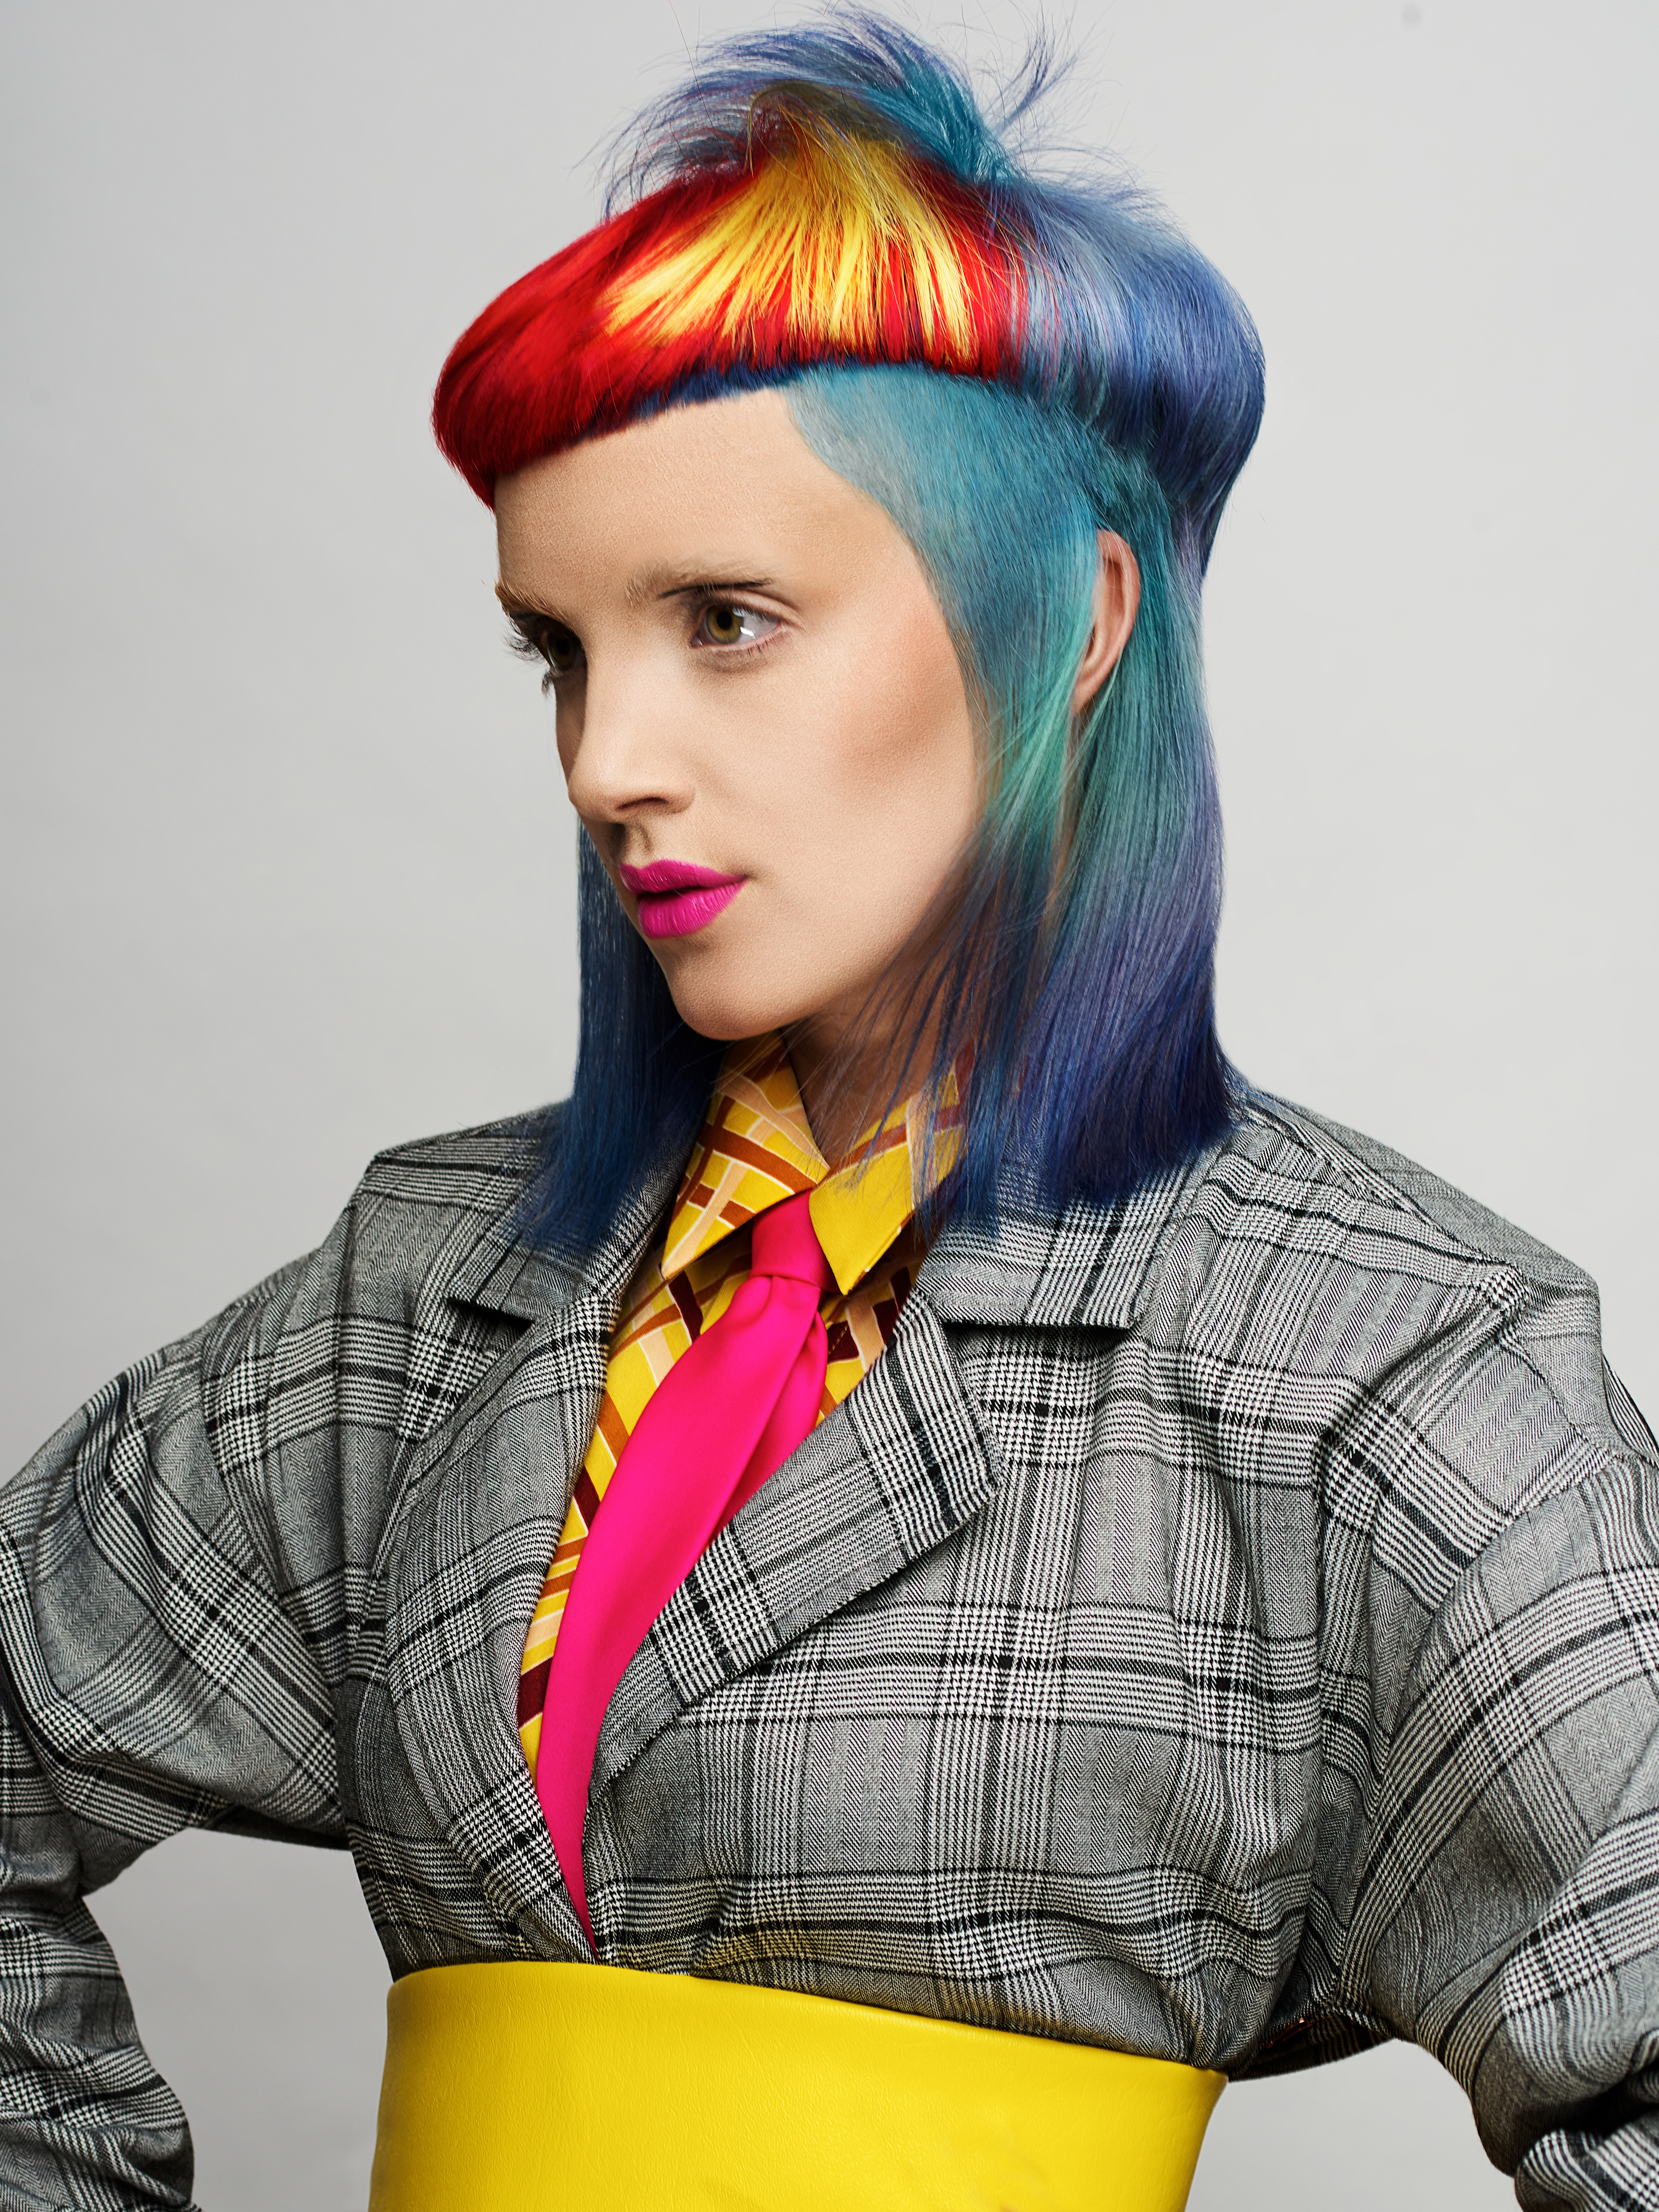 <p>Kylie Bussing</p>  <p>The Hair Company&nbsp;</p>  <p>Nashua, New Hampshire</p>  <p>Kylie Bussing is known for bushing boundaries. So when it came to finding a model for her Color Zoom entry, she knew she had her work cut out for her: She not only needed a model, she needed a model who was willing to wear an alternative look for months. &ldquo;I have gotten so many questions about how my model maintained this look in between the intial photoshoot and the time it took to hear back if we were going to be competing live,&rdquo; Bussing says. &ldquo;This collection was all about pops of color and pure tones, so as I designed this look I knew I would have to do it in a way where I could also take the color out for a look she was willing to wear in between competitions.&rdquo;&nbsp;</p>